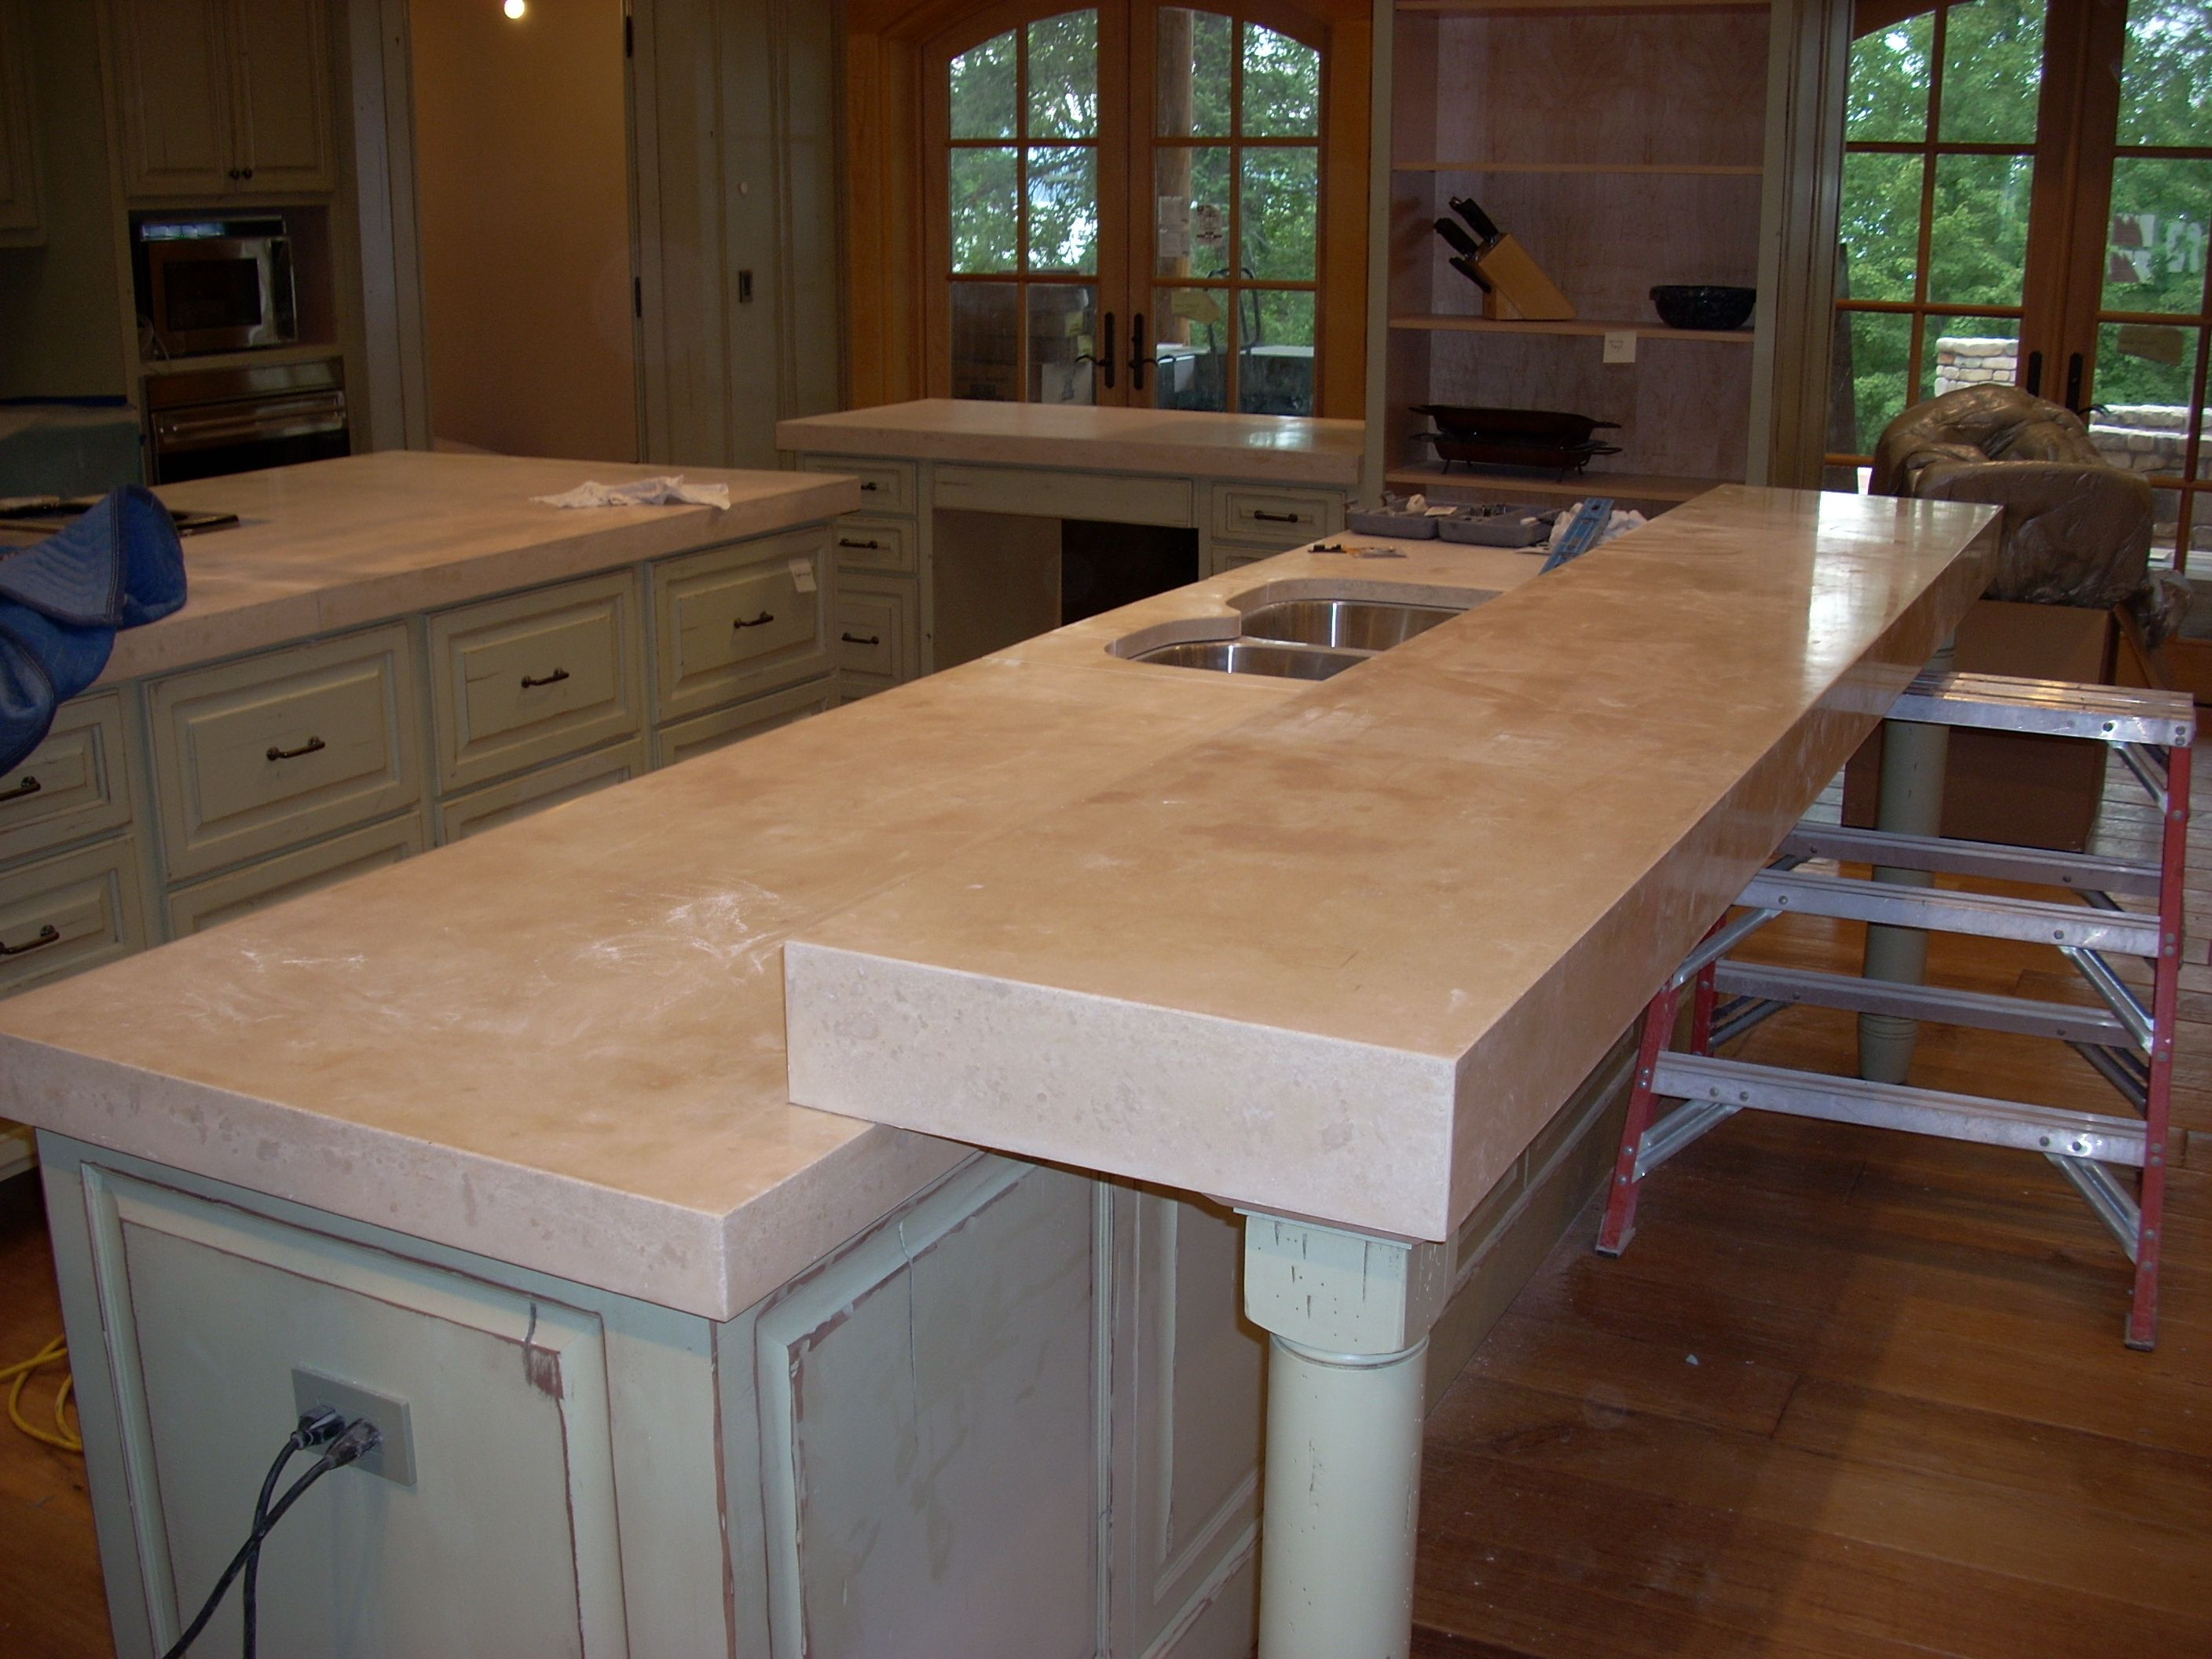 concrete countertops | Kitchen or Outdoor Concrete Countertops ...